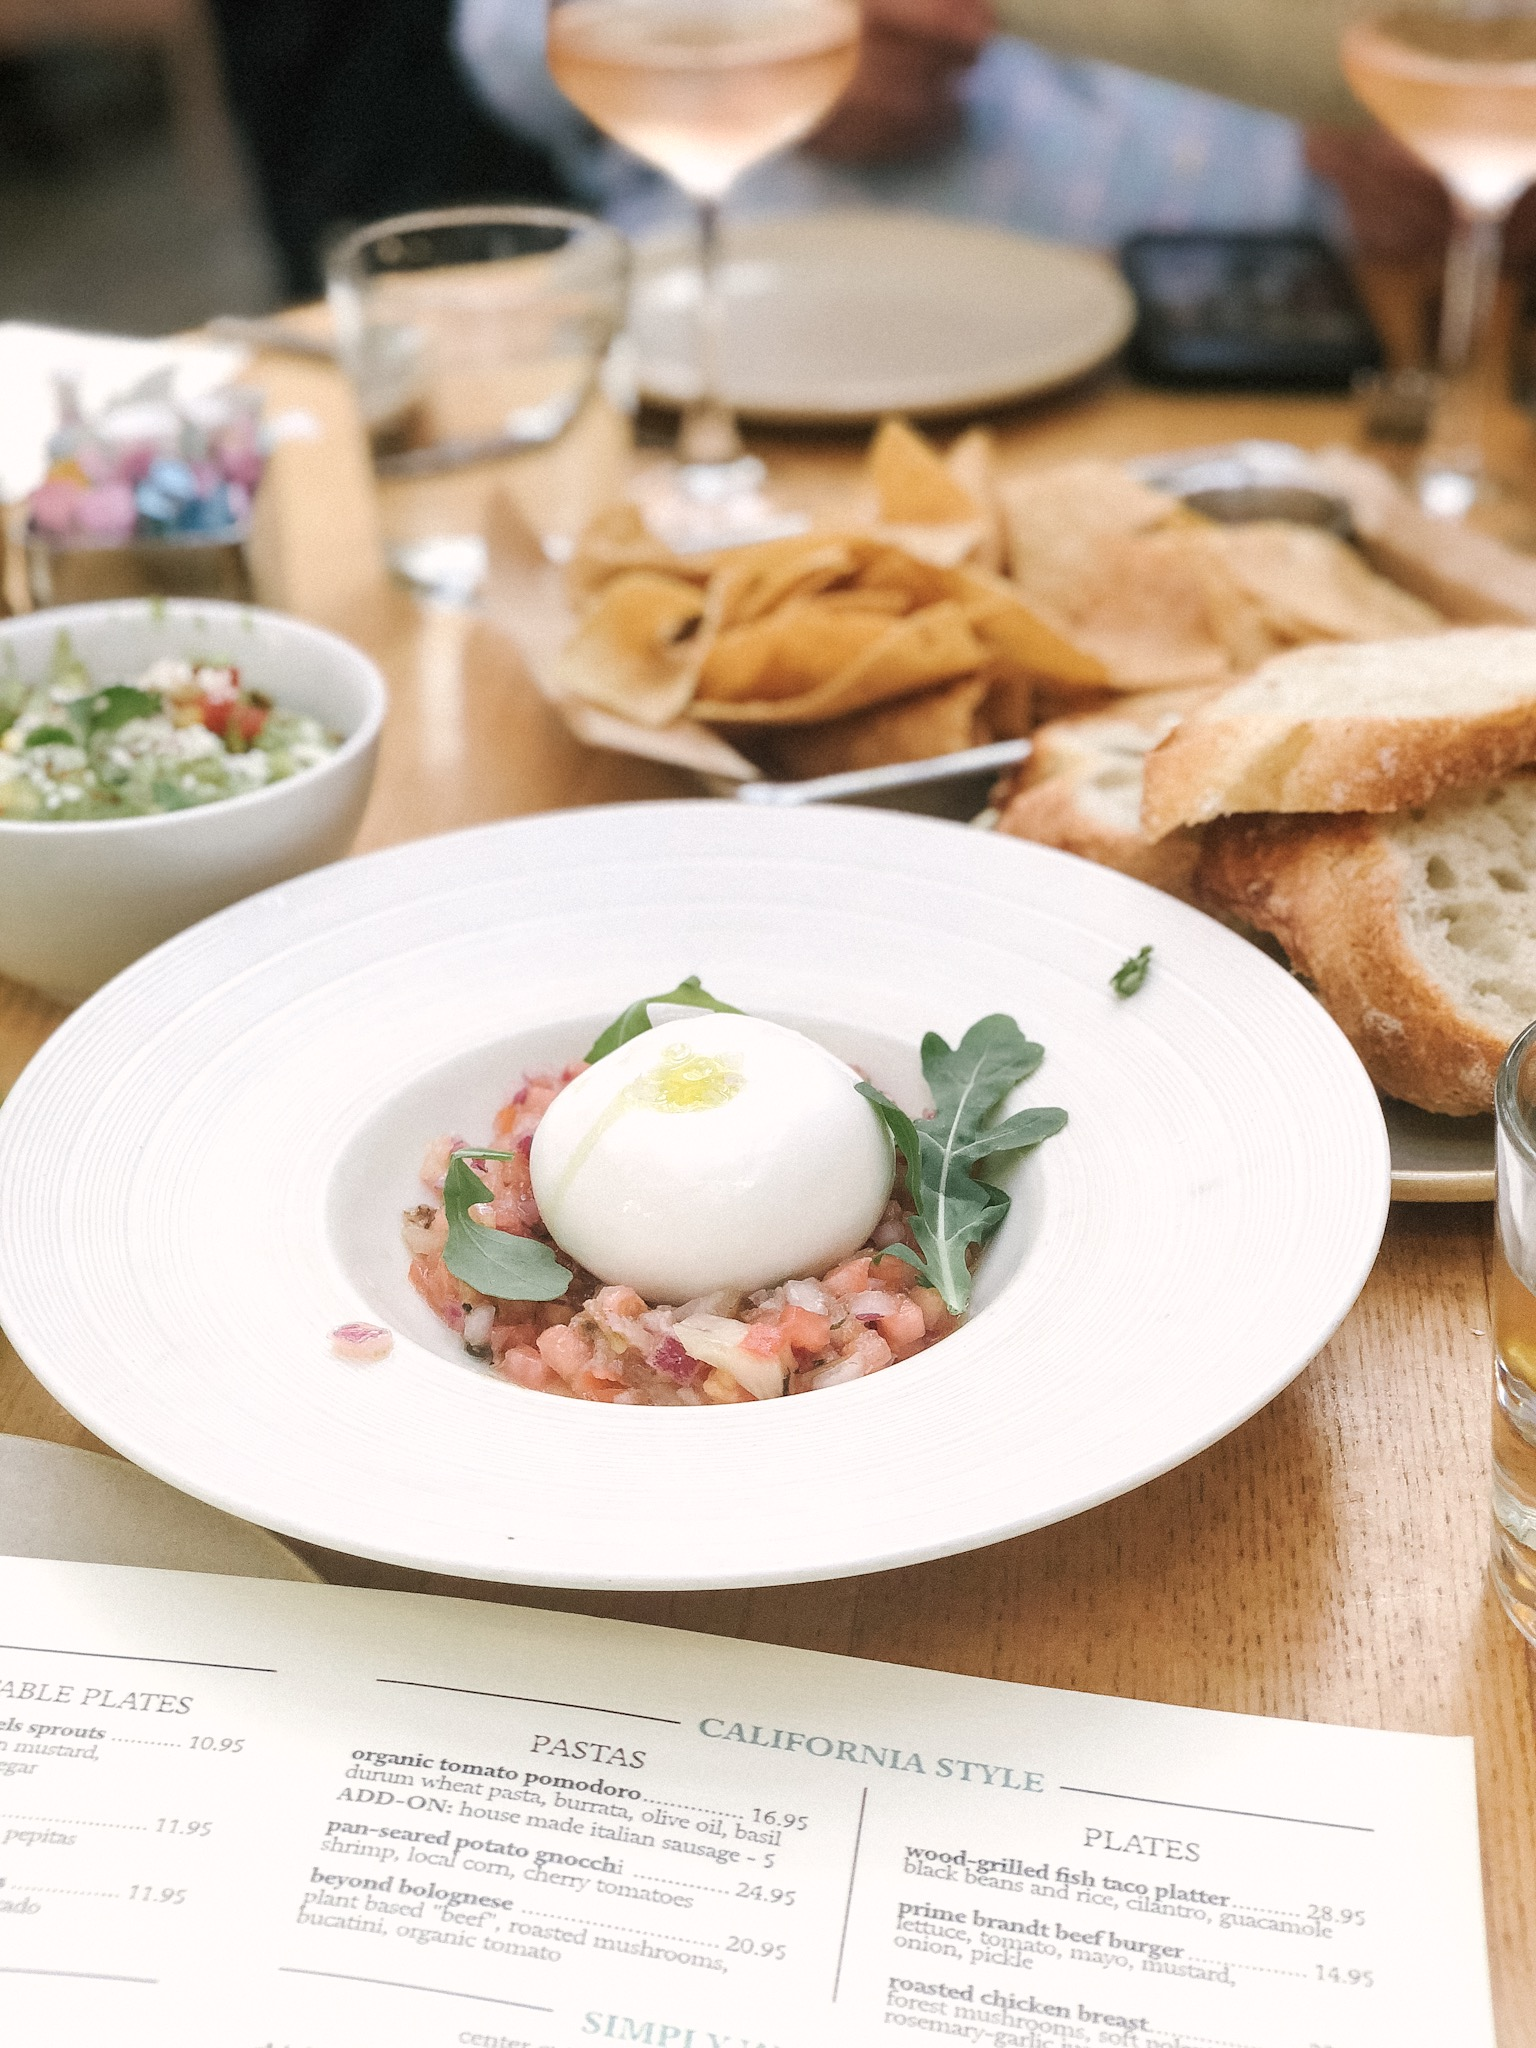 Summer House Santa Monica - burrata with warmed bread, Summer Water wine & guacamole & house-made chips